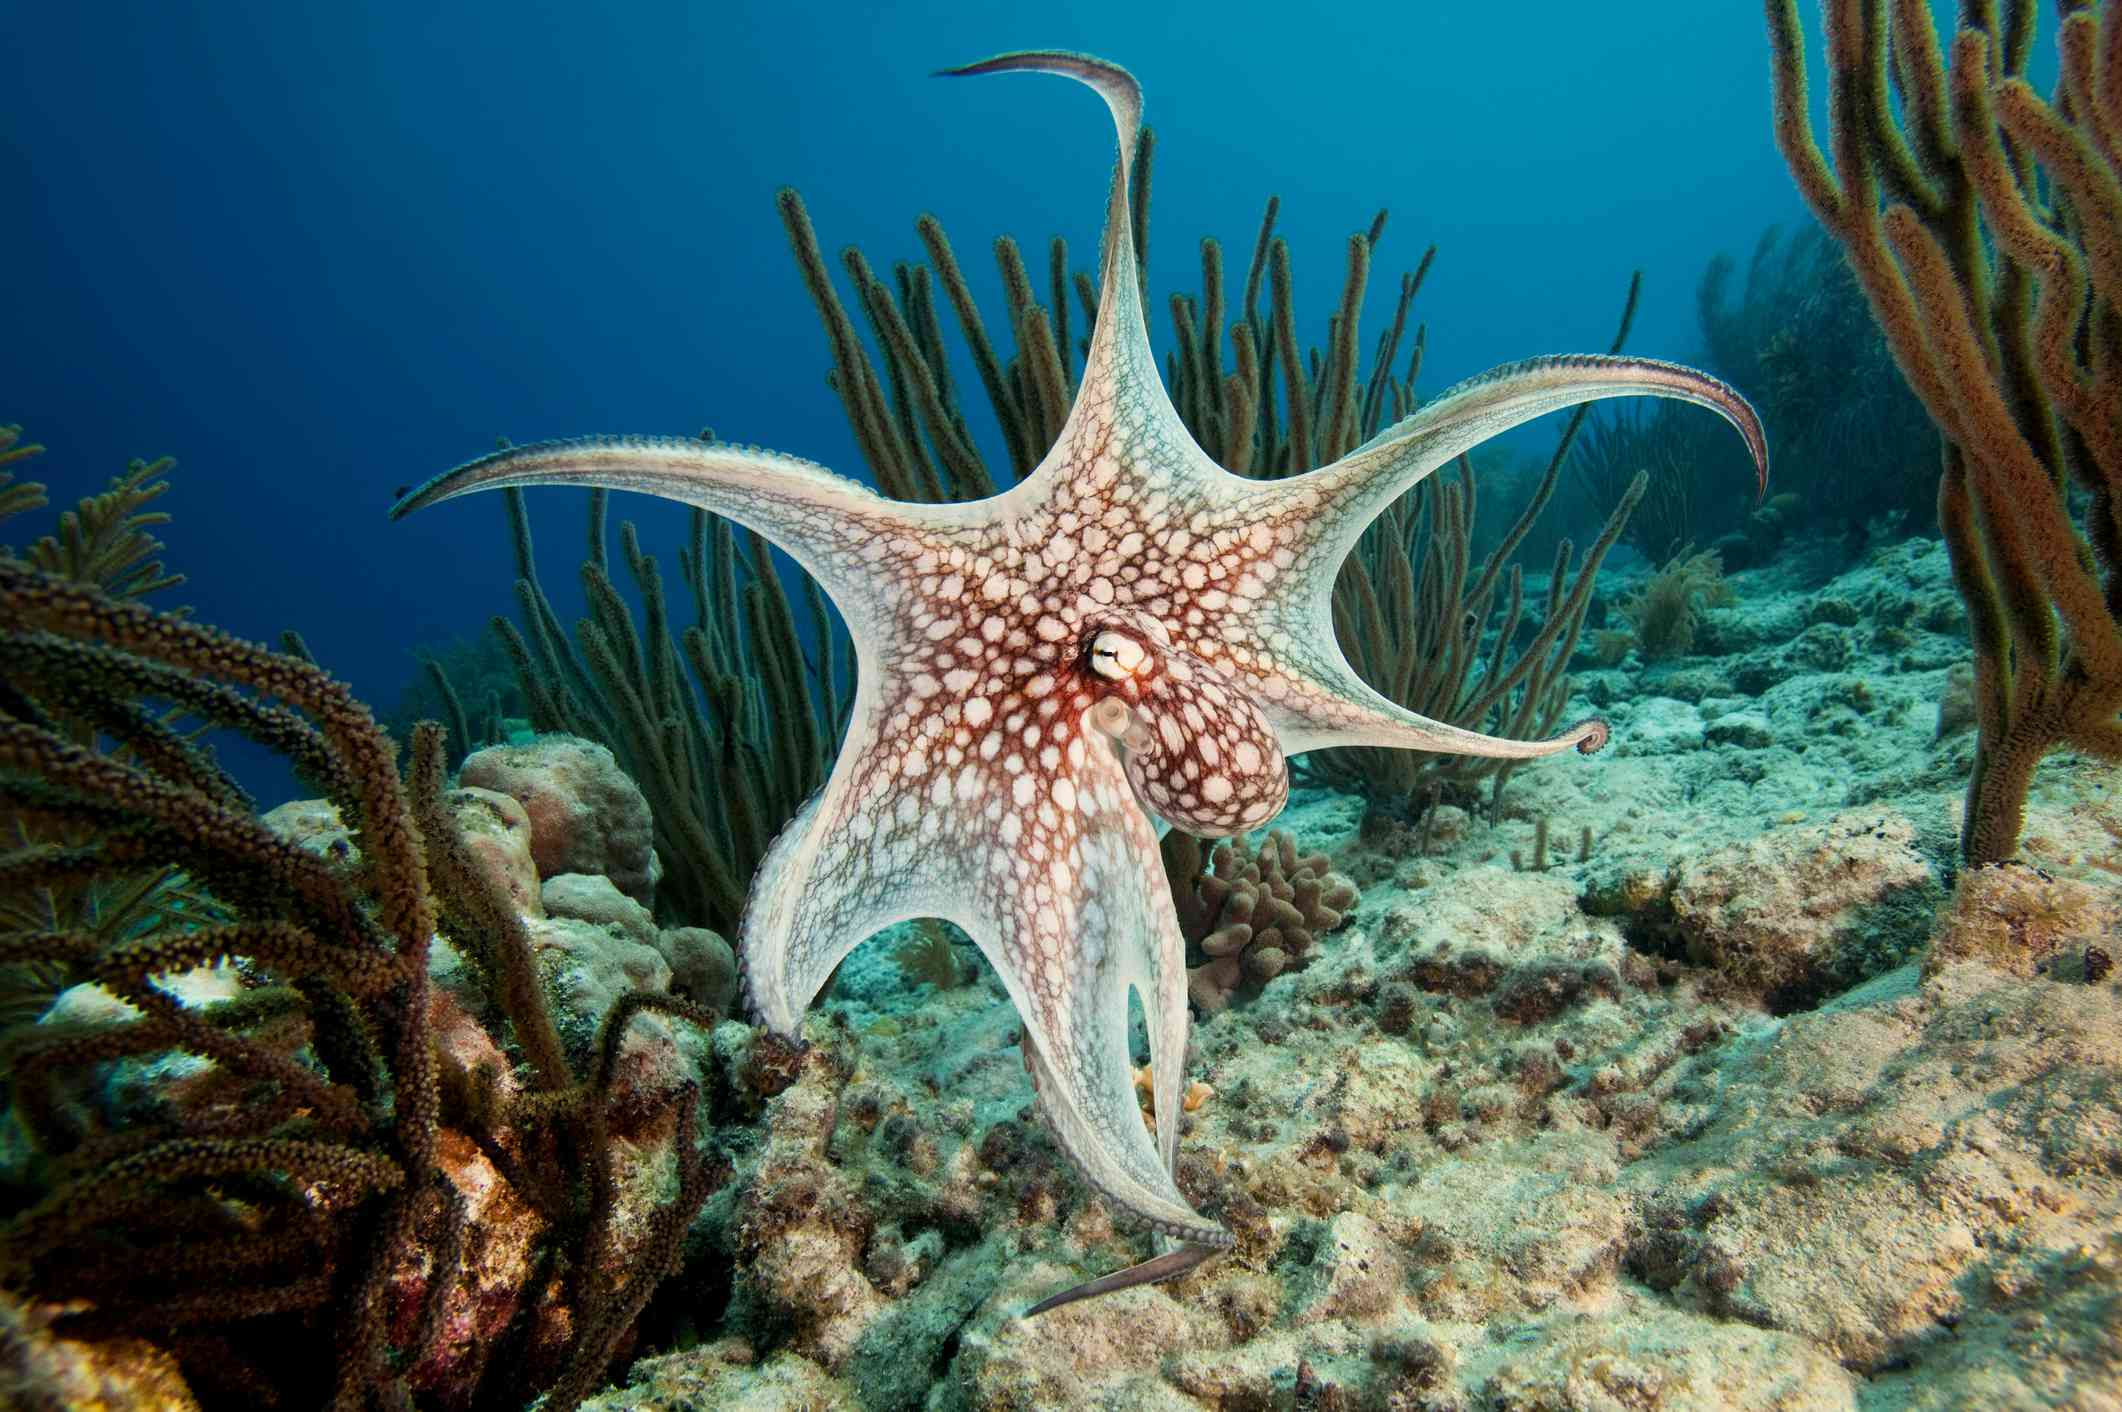 Common octopus with tentacles stretched swimming